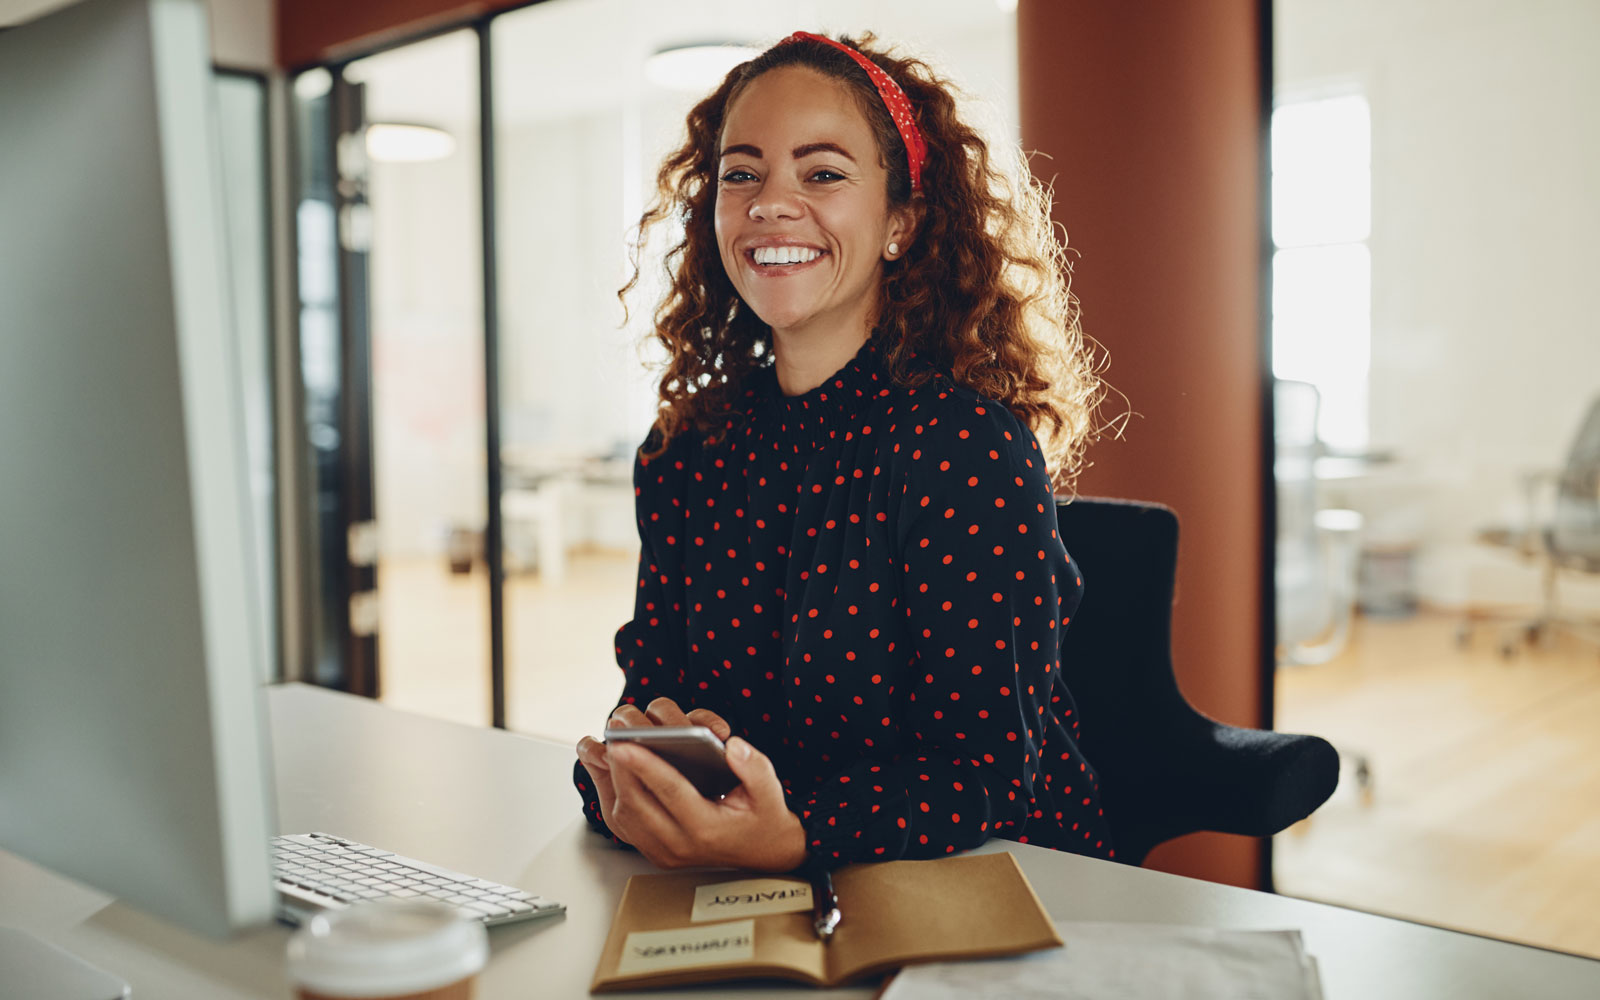 smiling professional woman at desk